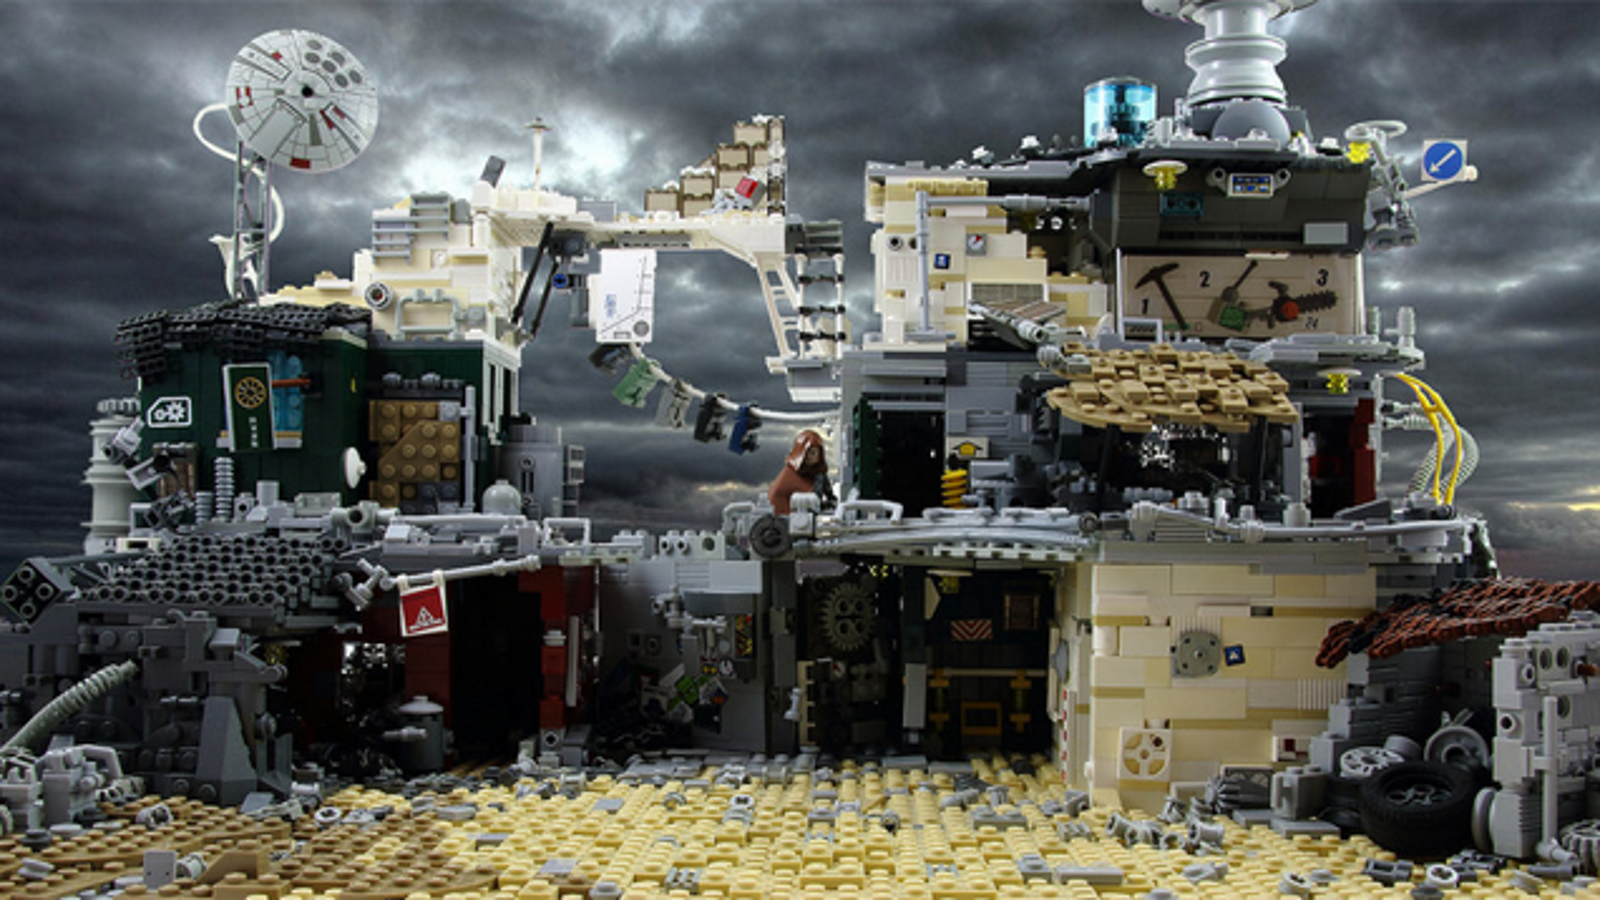 cyberpunk lego is  sadly  not official